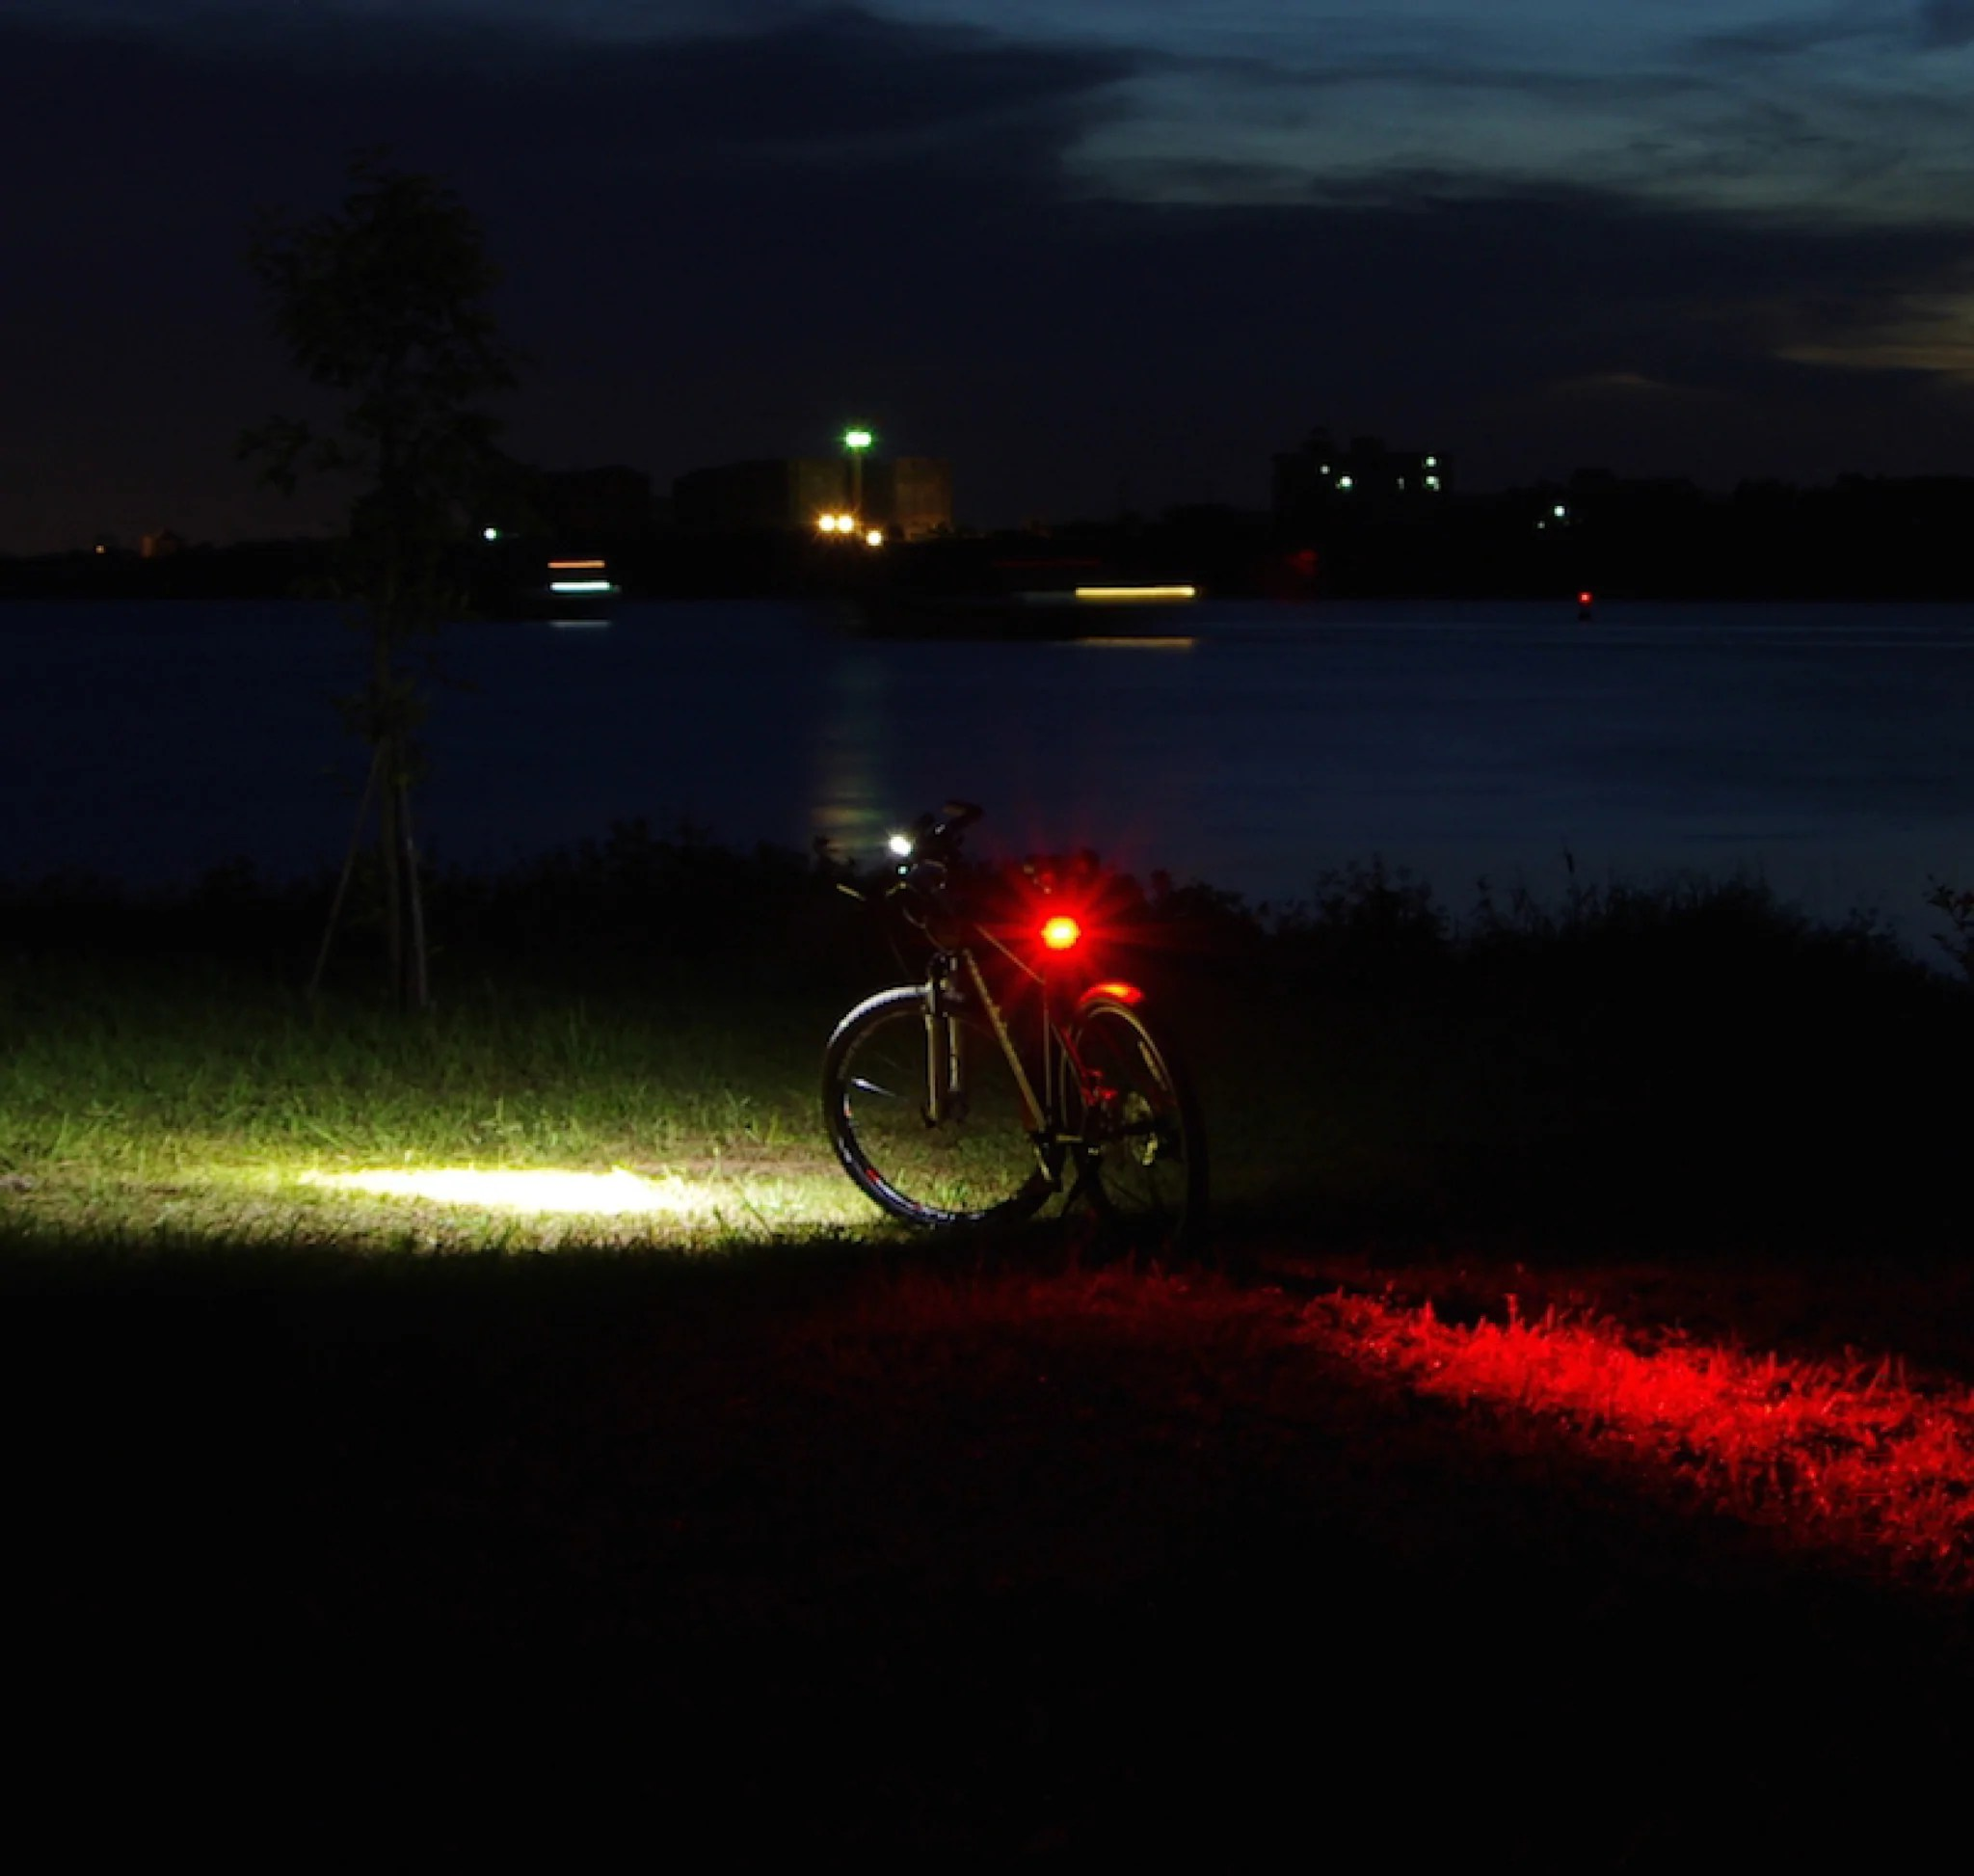 200 Lumen Night Provision Nipro R1 V2 200 Lumen Usb Rechargeable Rear Bicycle Tail Light